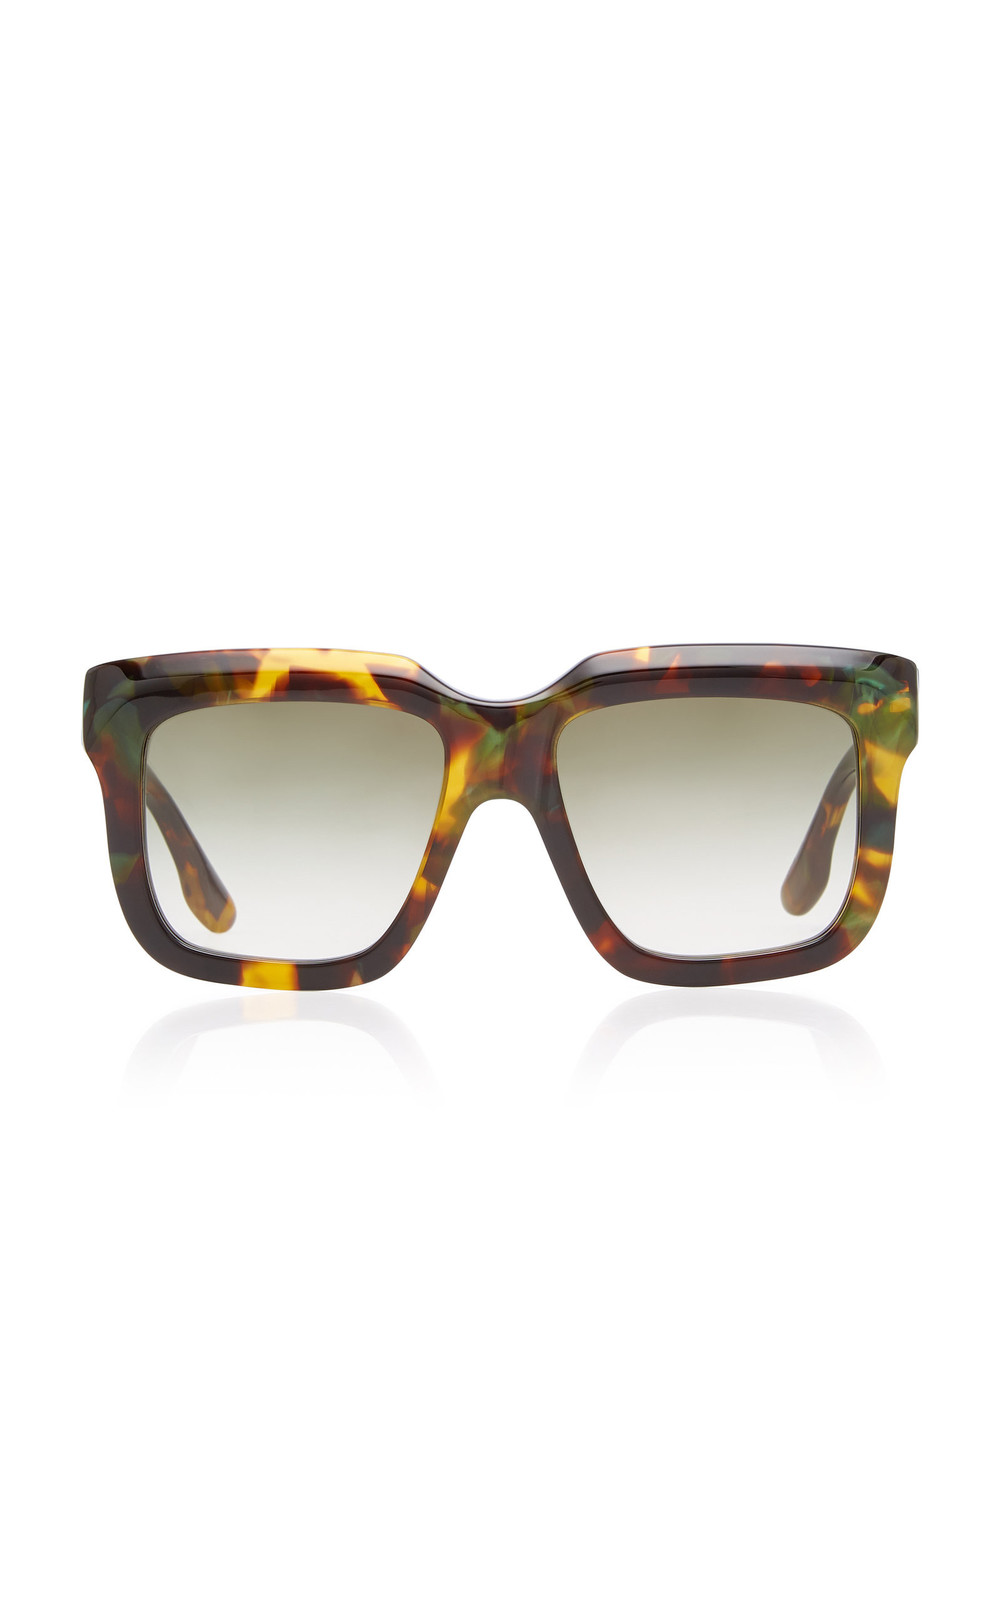 Victoria Beckham Oversized Square-Frame Acetate Sunglasses in brown